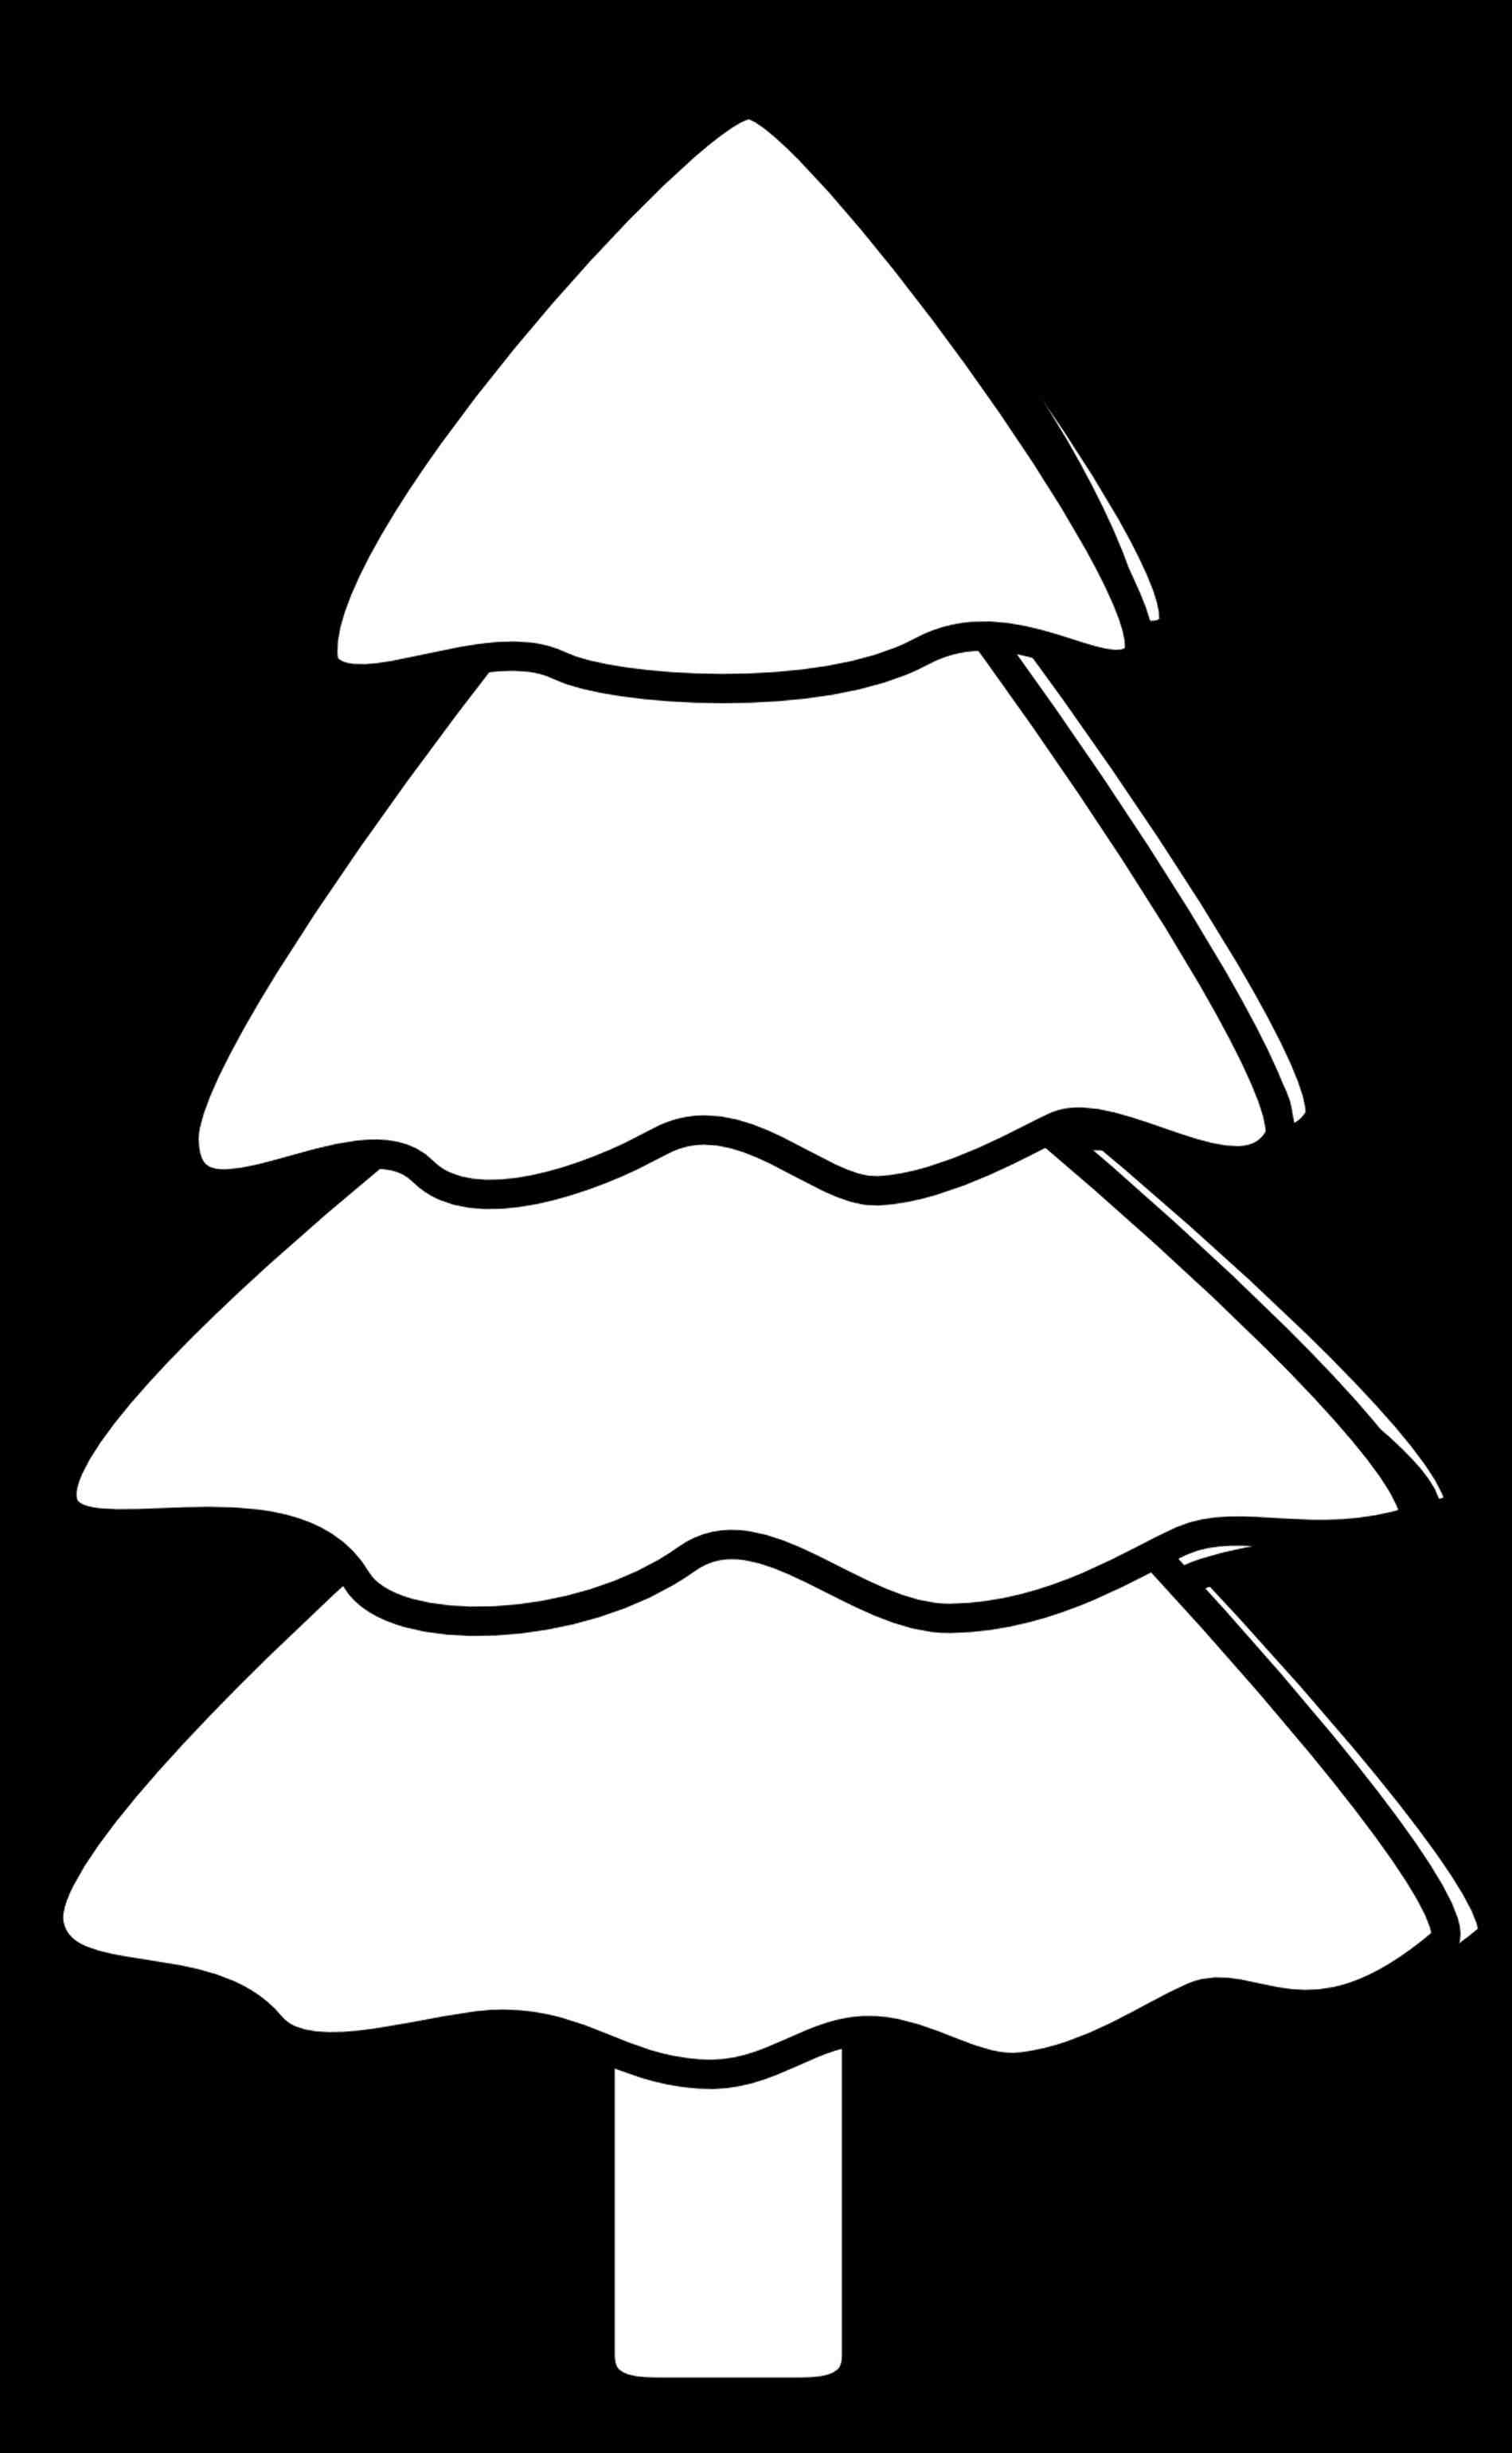 1899x3081 Free Christmas Clip Art Black And White Cheminee.website